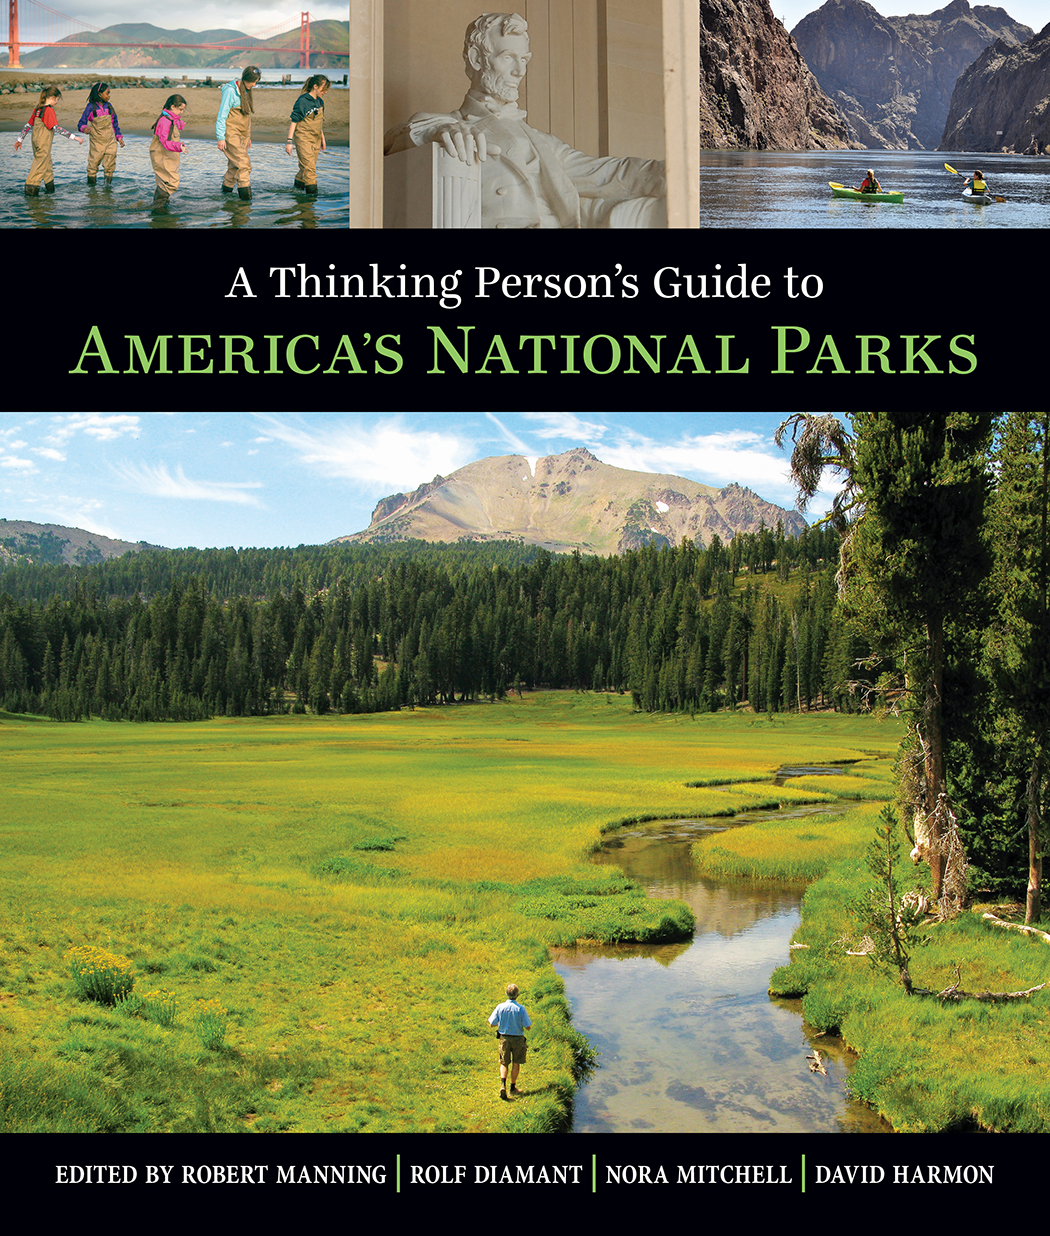 ThinkingPersonNationalParksCover copy.jpg